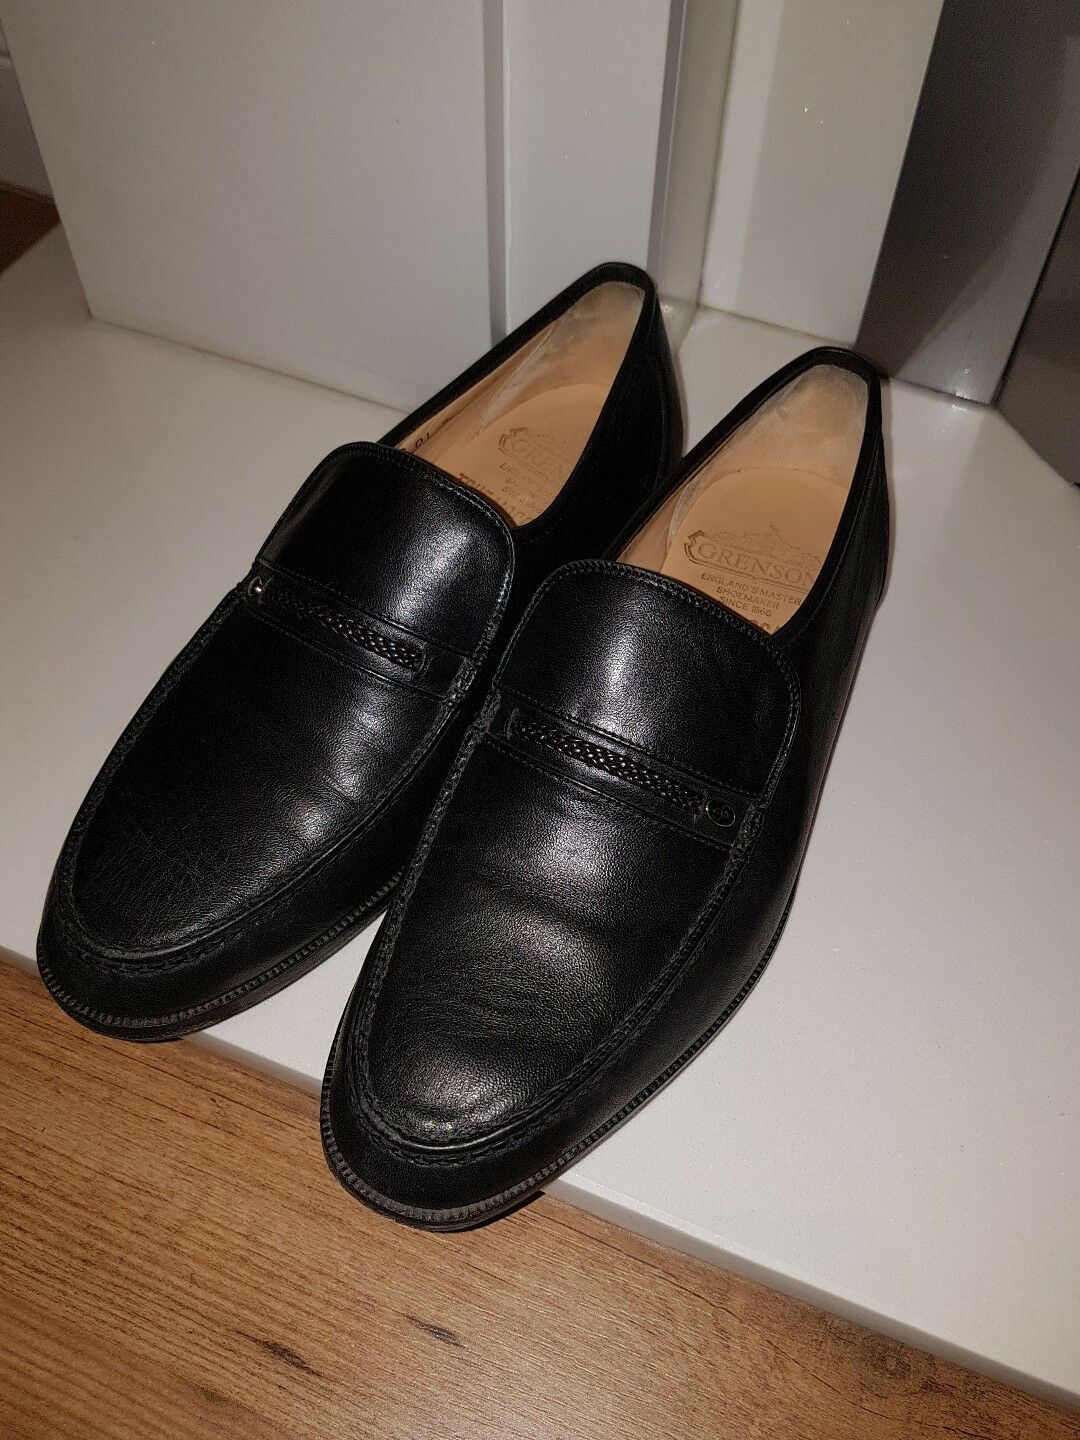 GRENSON MENS LOAFERS SIZE 7.5